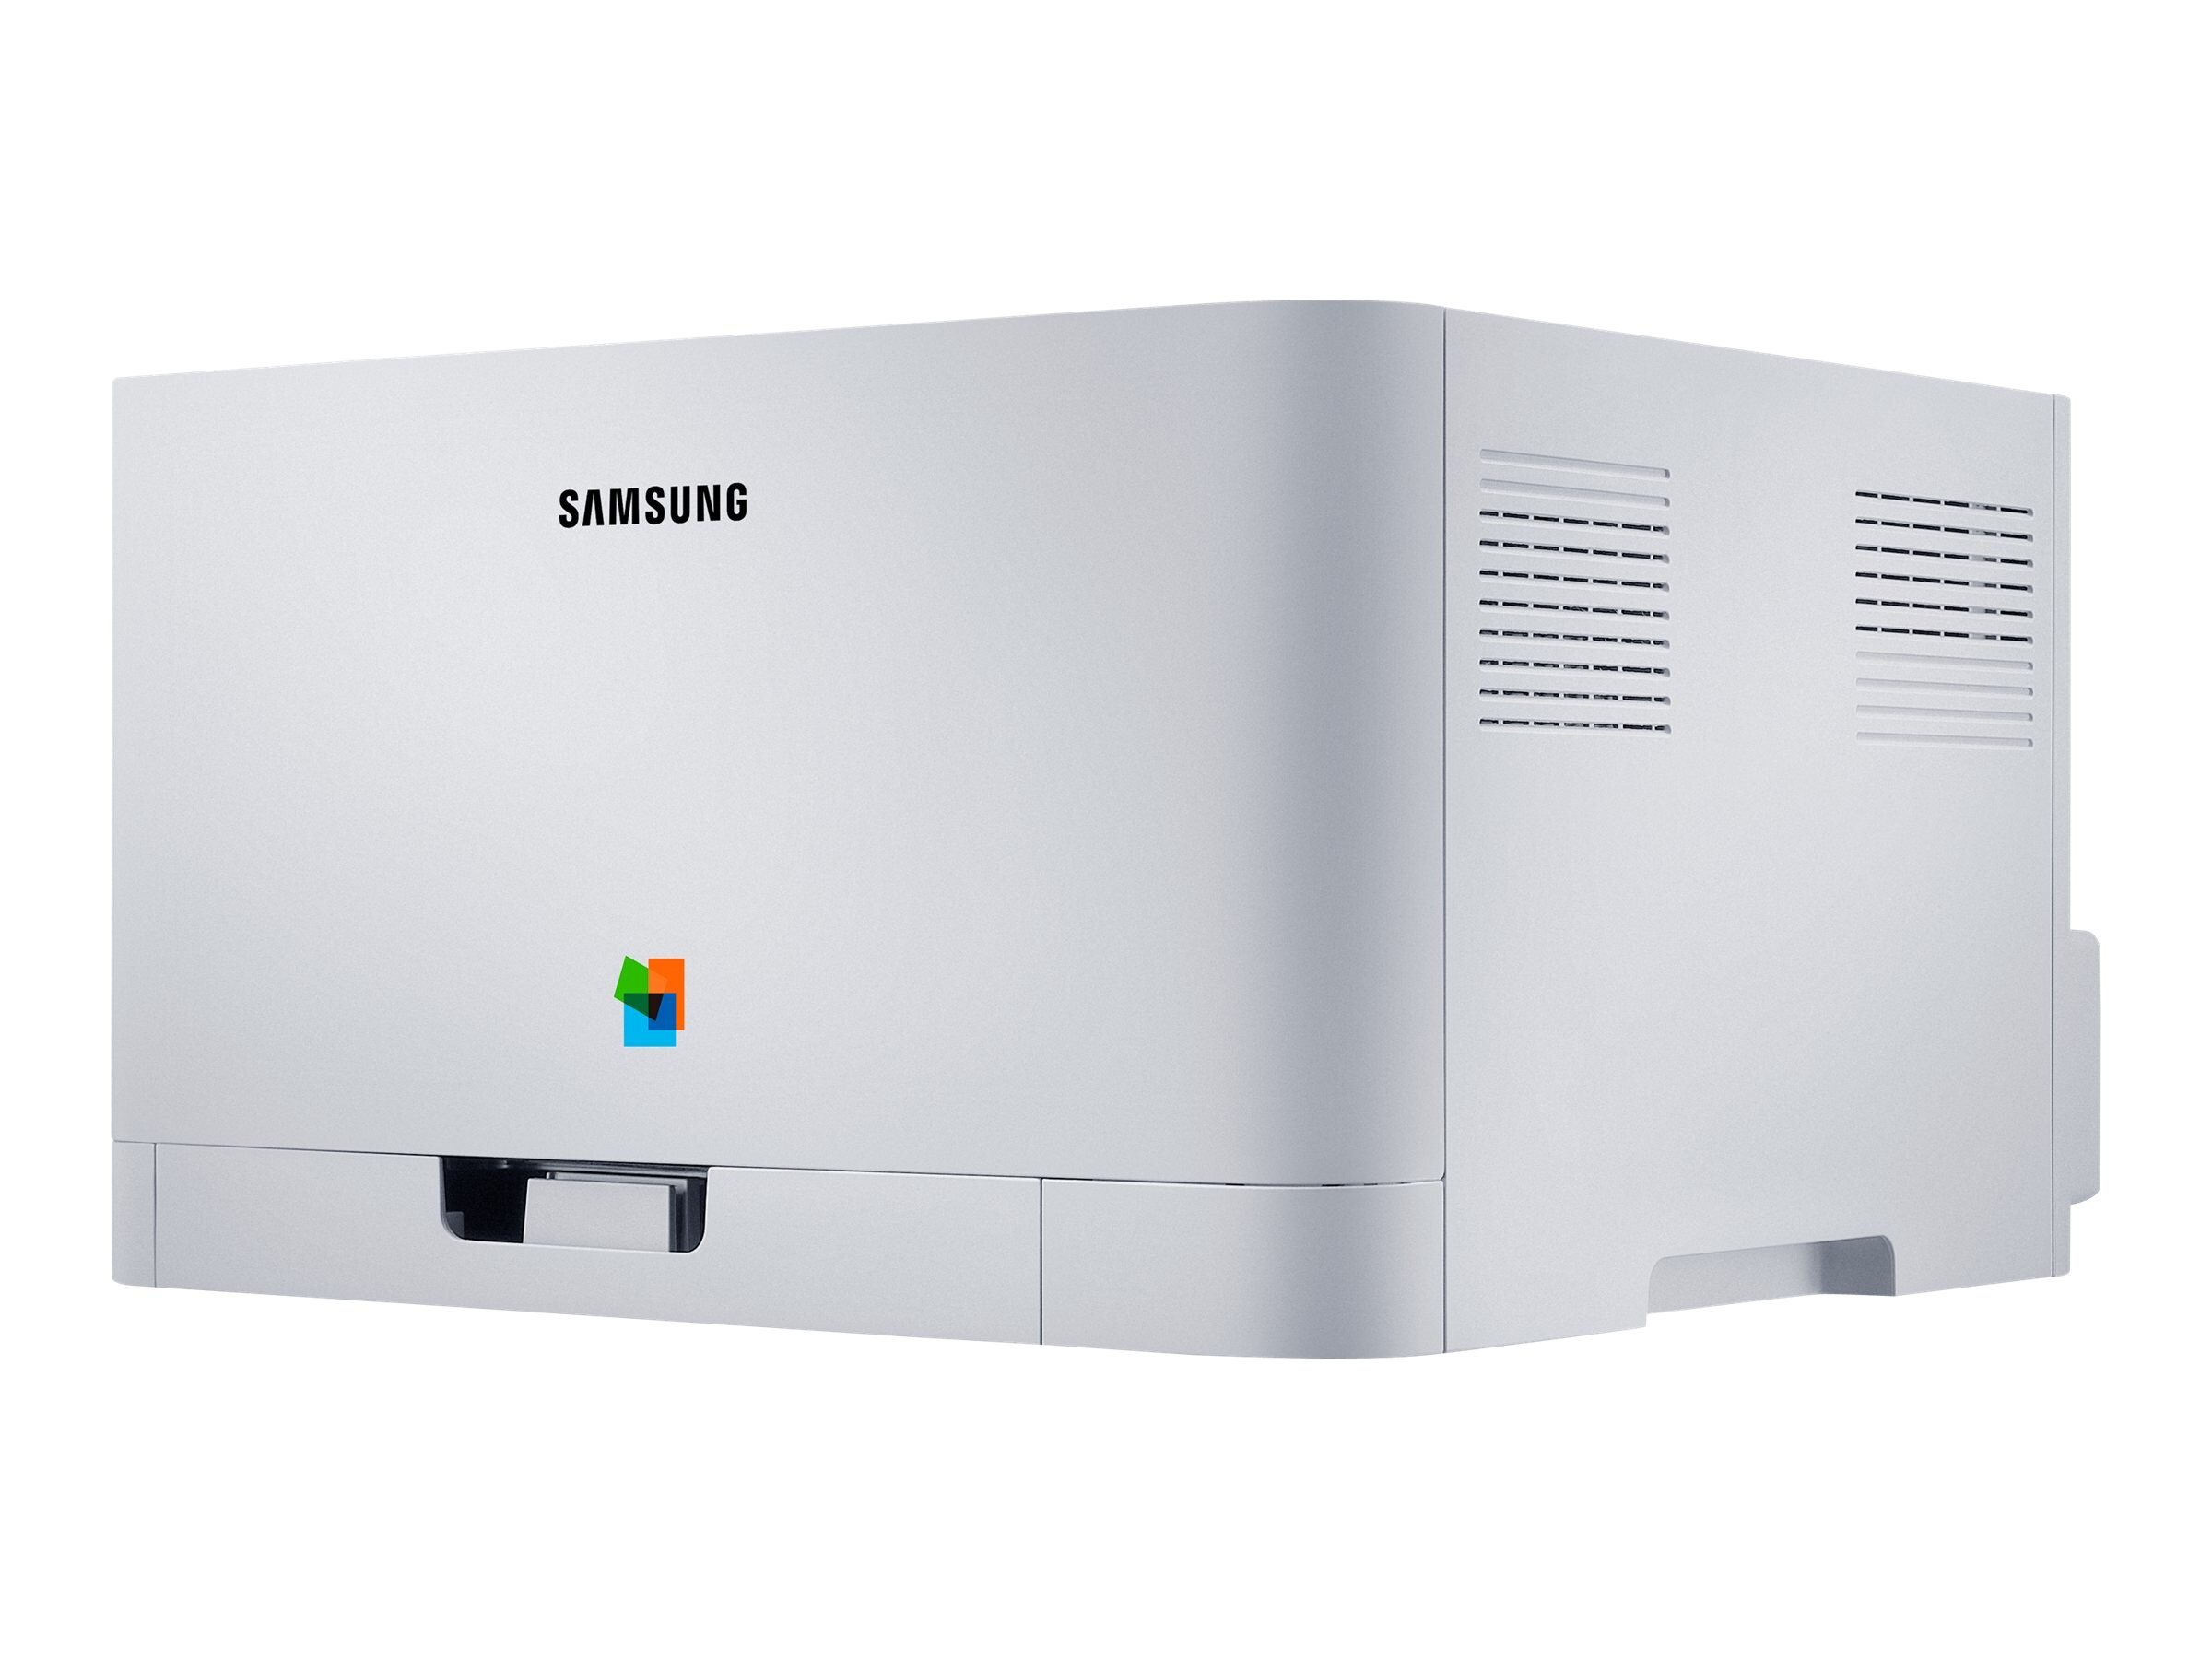 Samsung XPress C410W Color Laser Printer, SL-C410W/XAA, 16019793, Printers - Laser & LED (color)